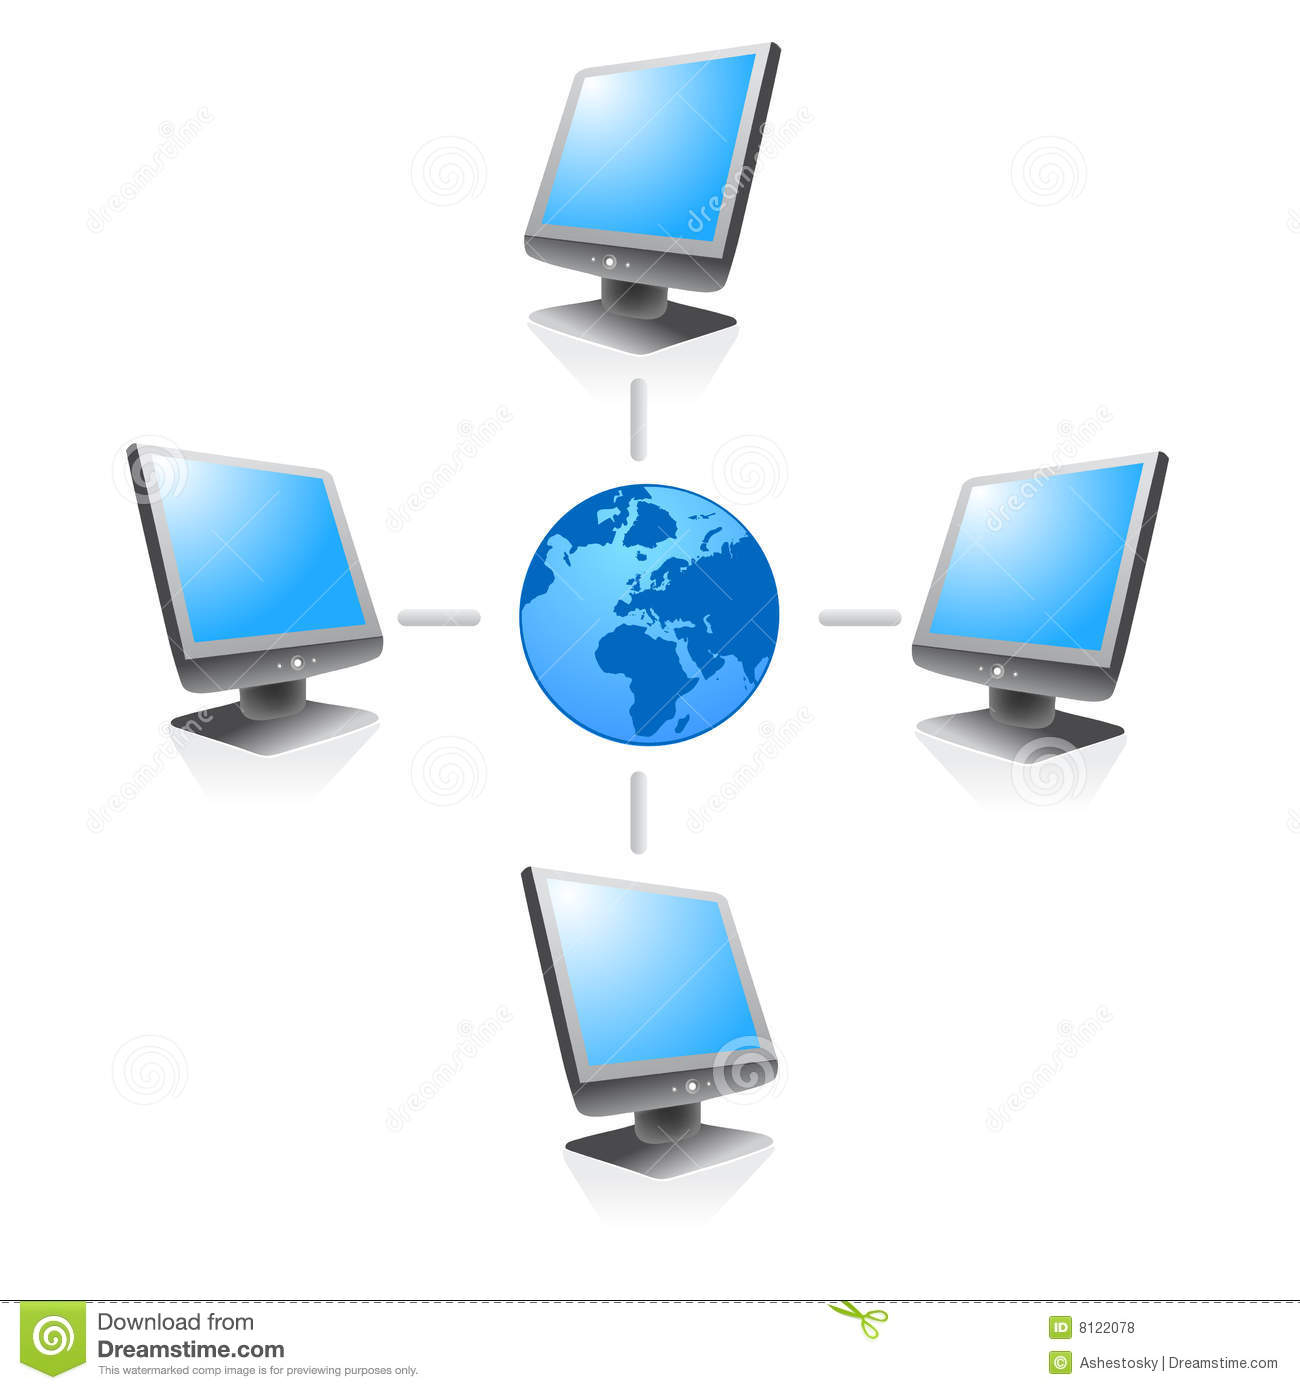 how to connect website to internet